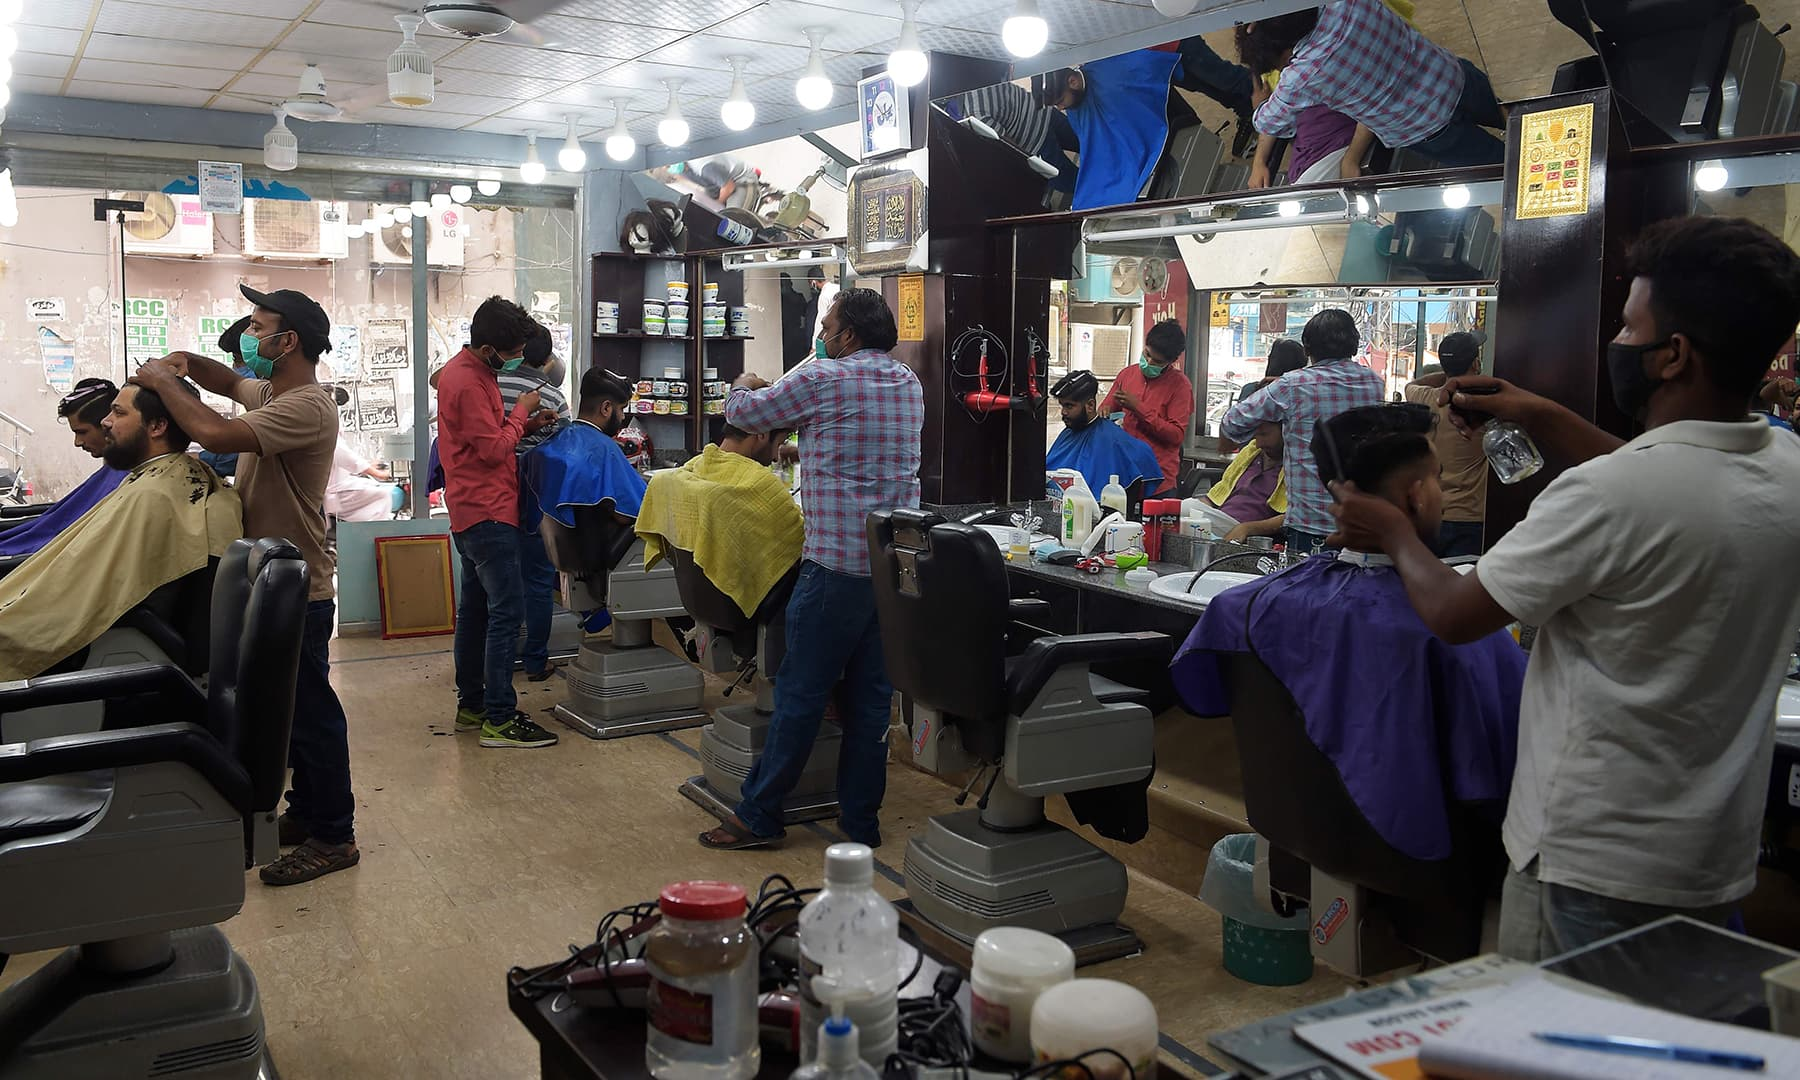 Barbers give haircuts to customers in Rawalpindi. — AFP